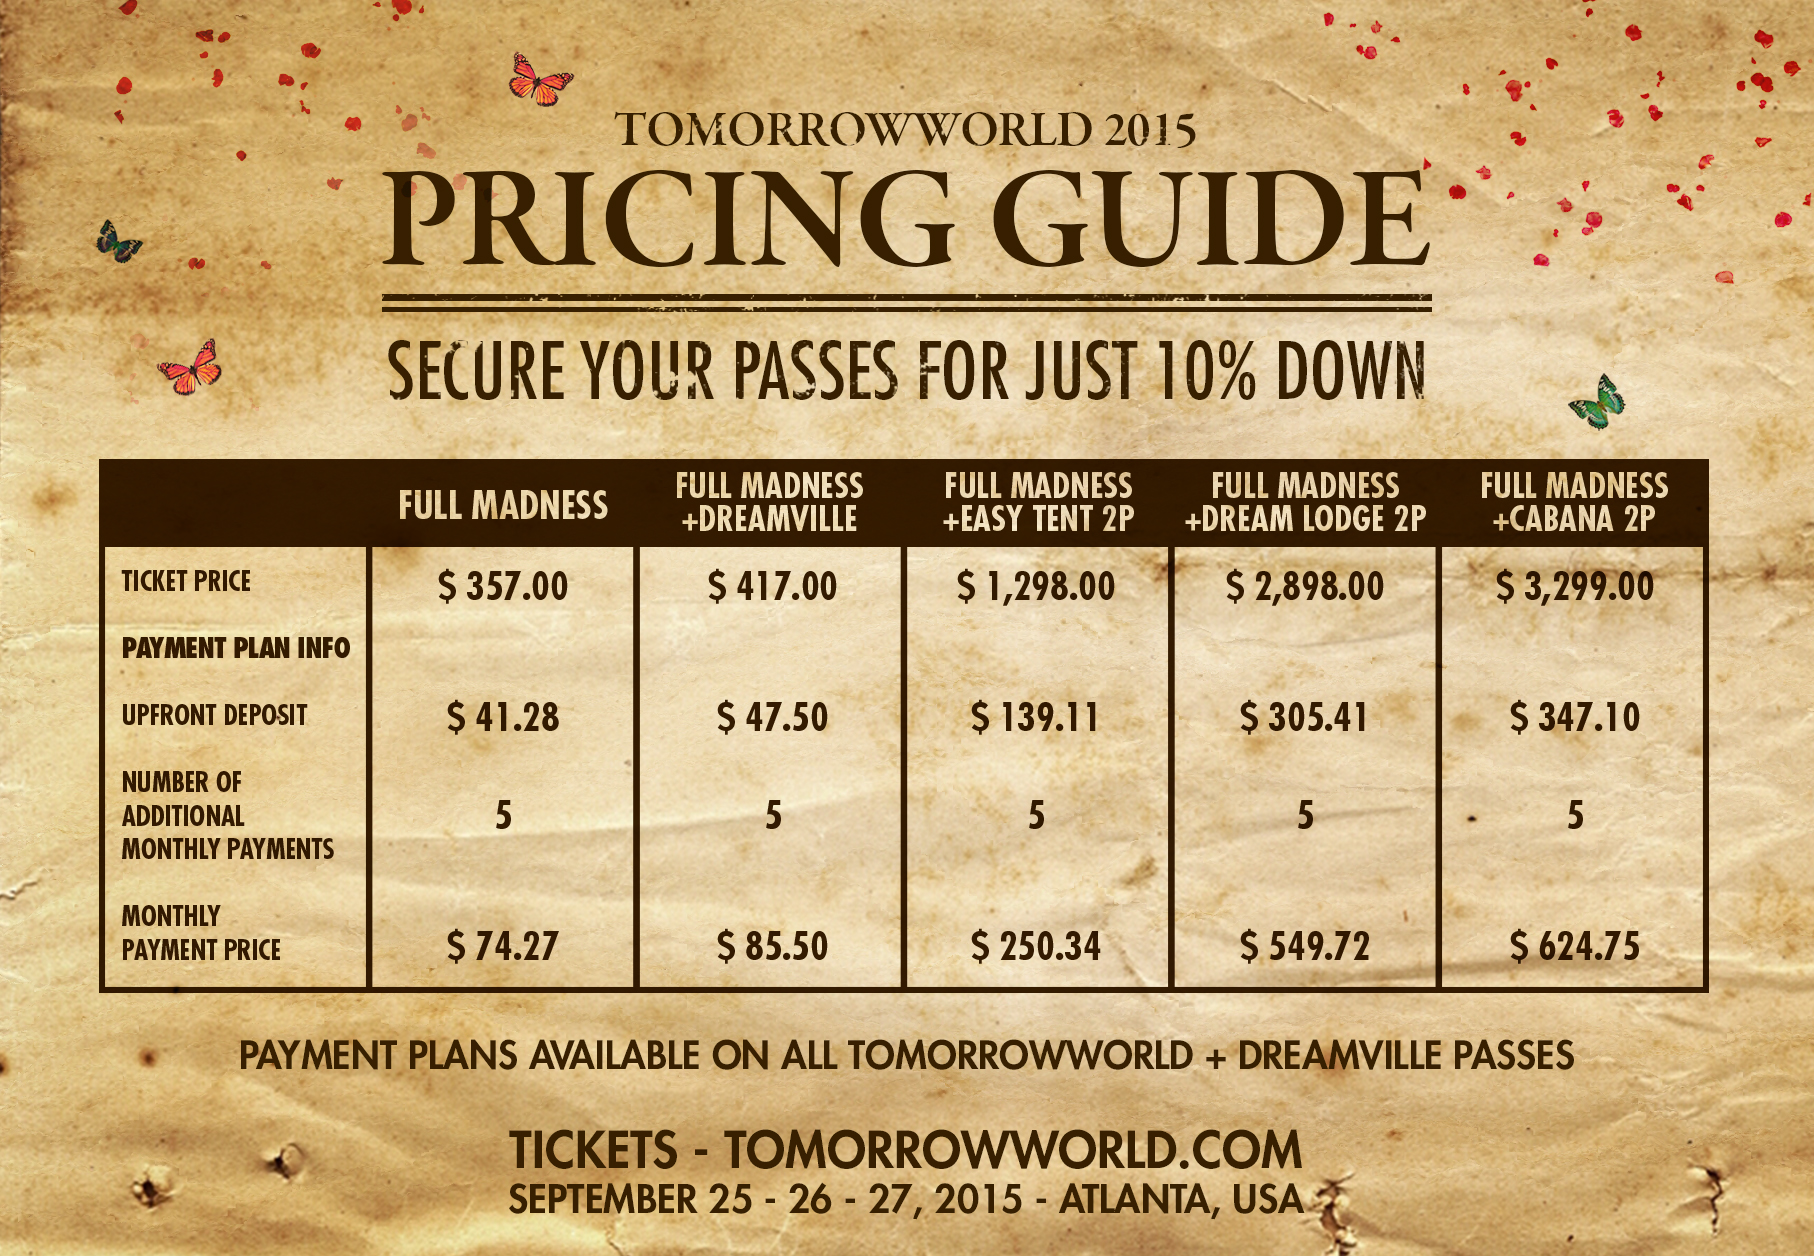 TomorrowworldPricingGuide